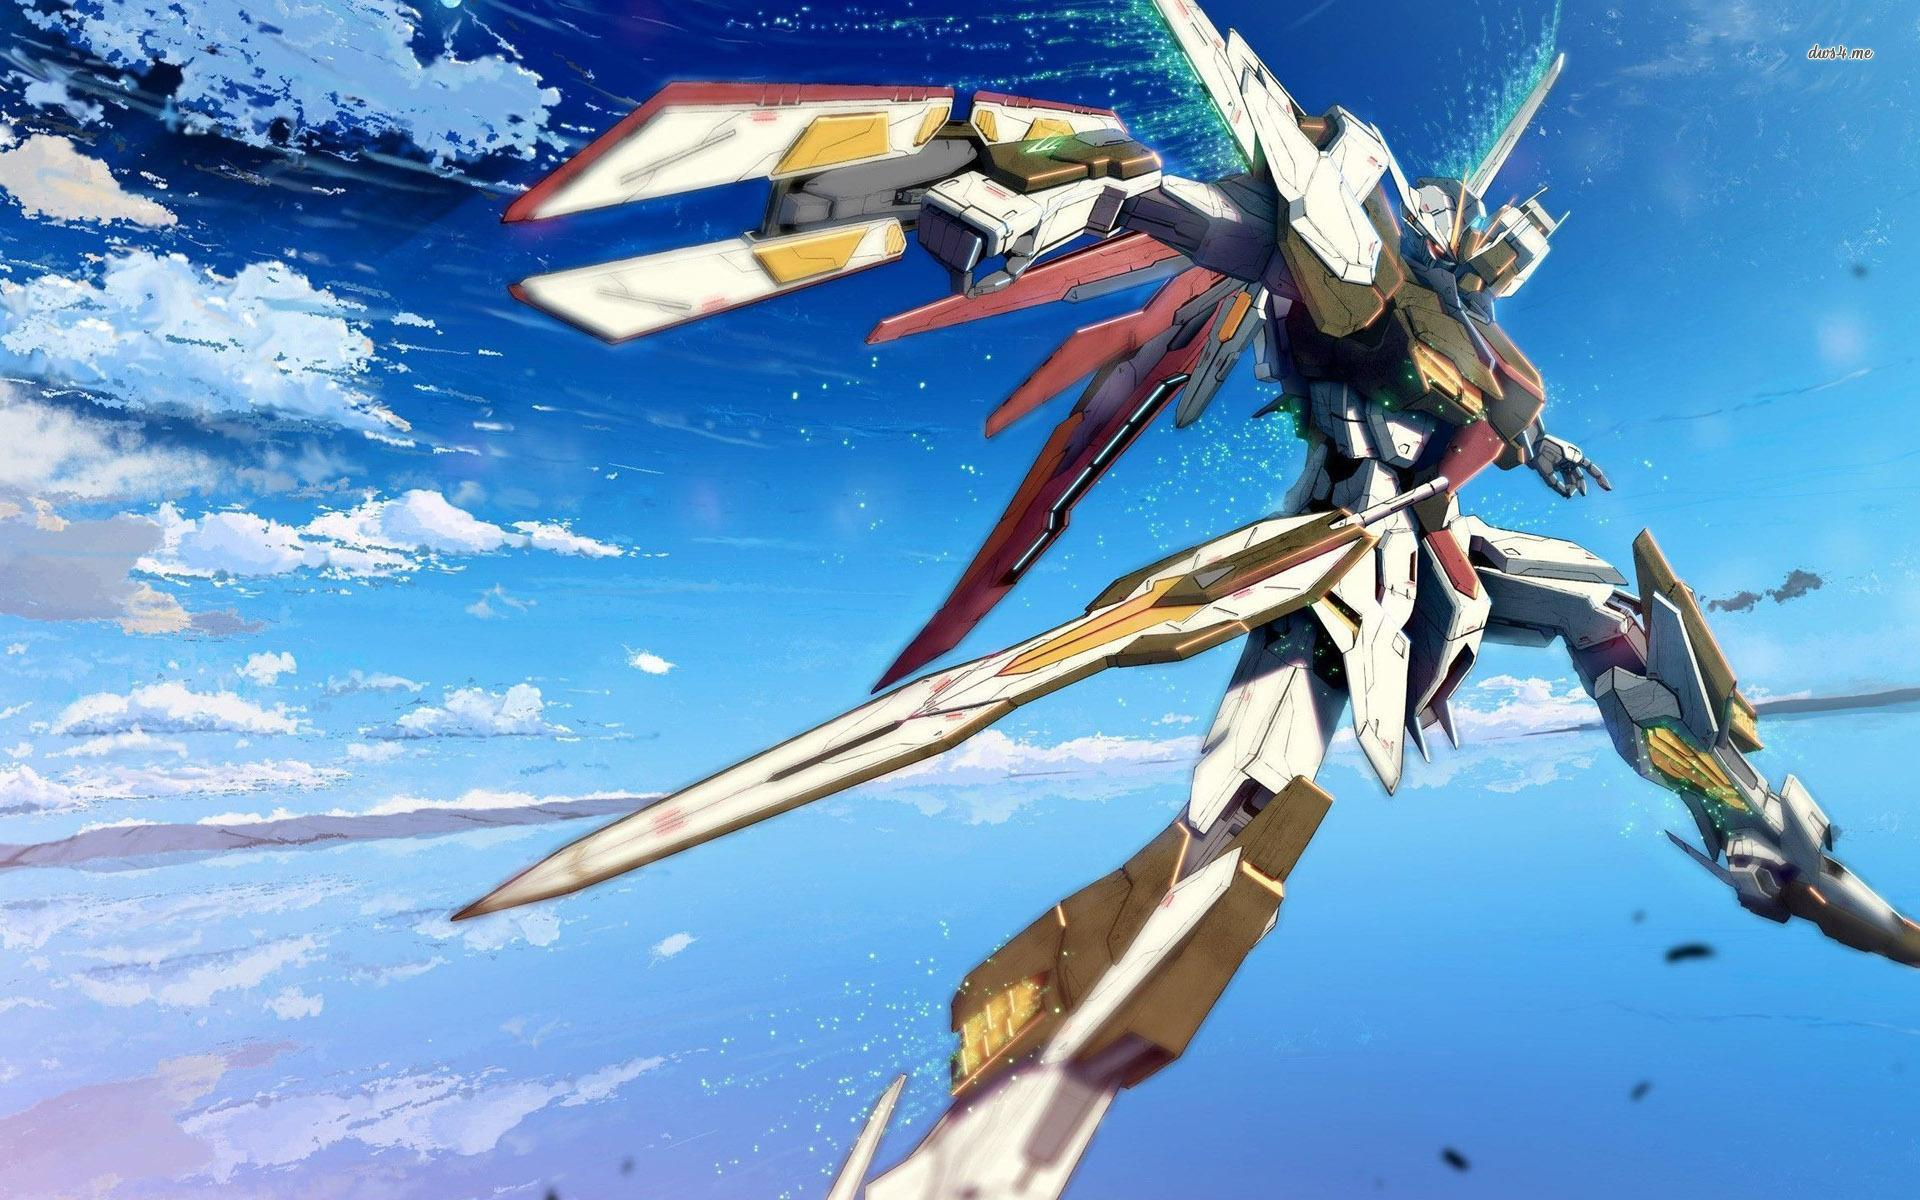 Cartoon Gundam Wallpapers 4k For Android Apk Download